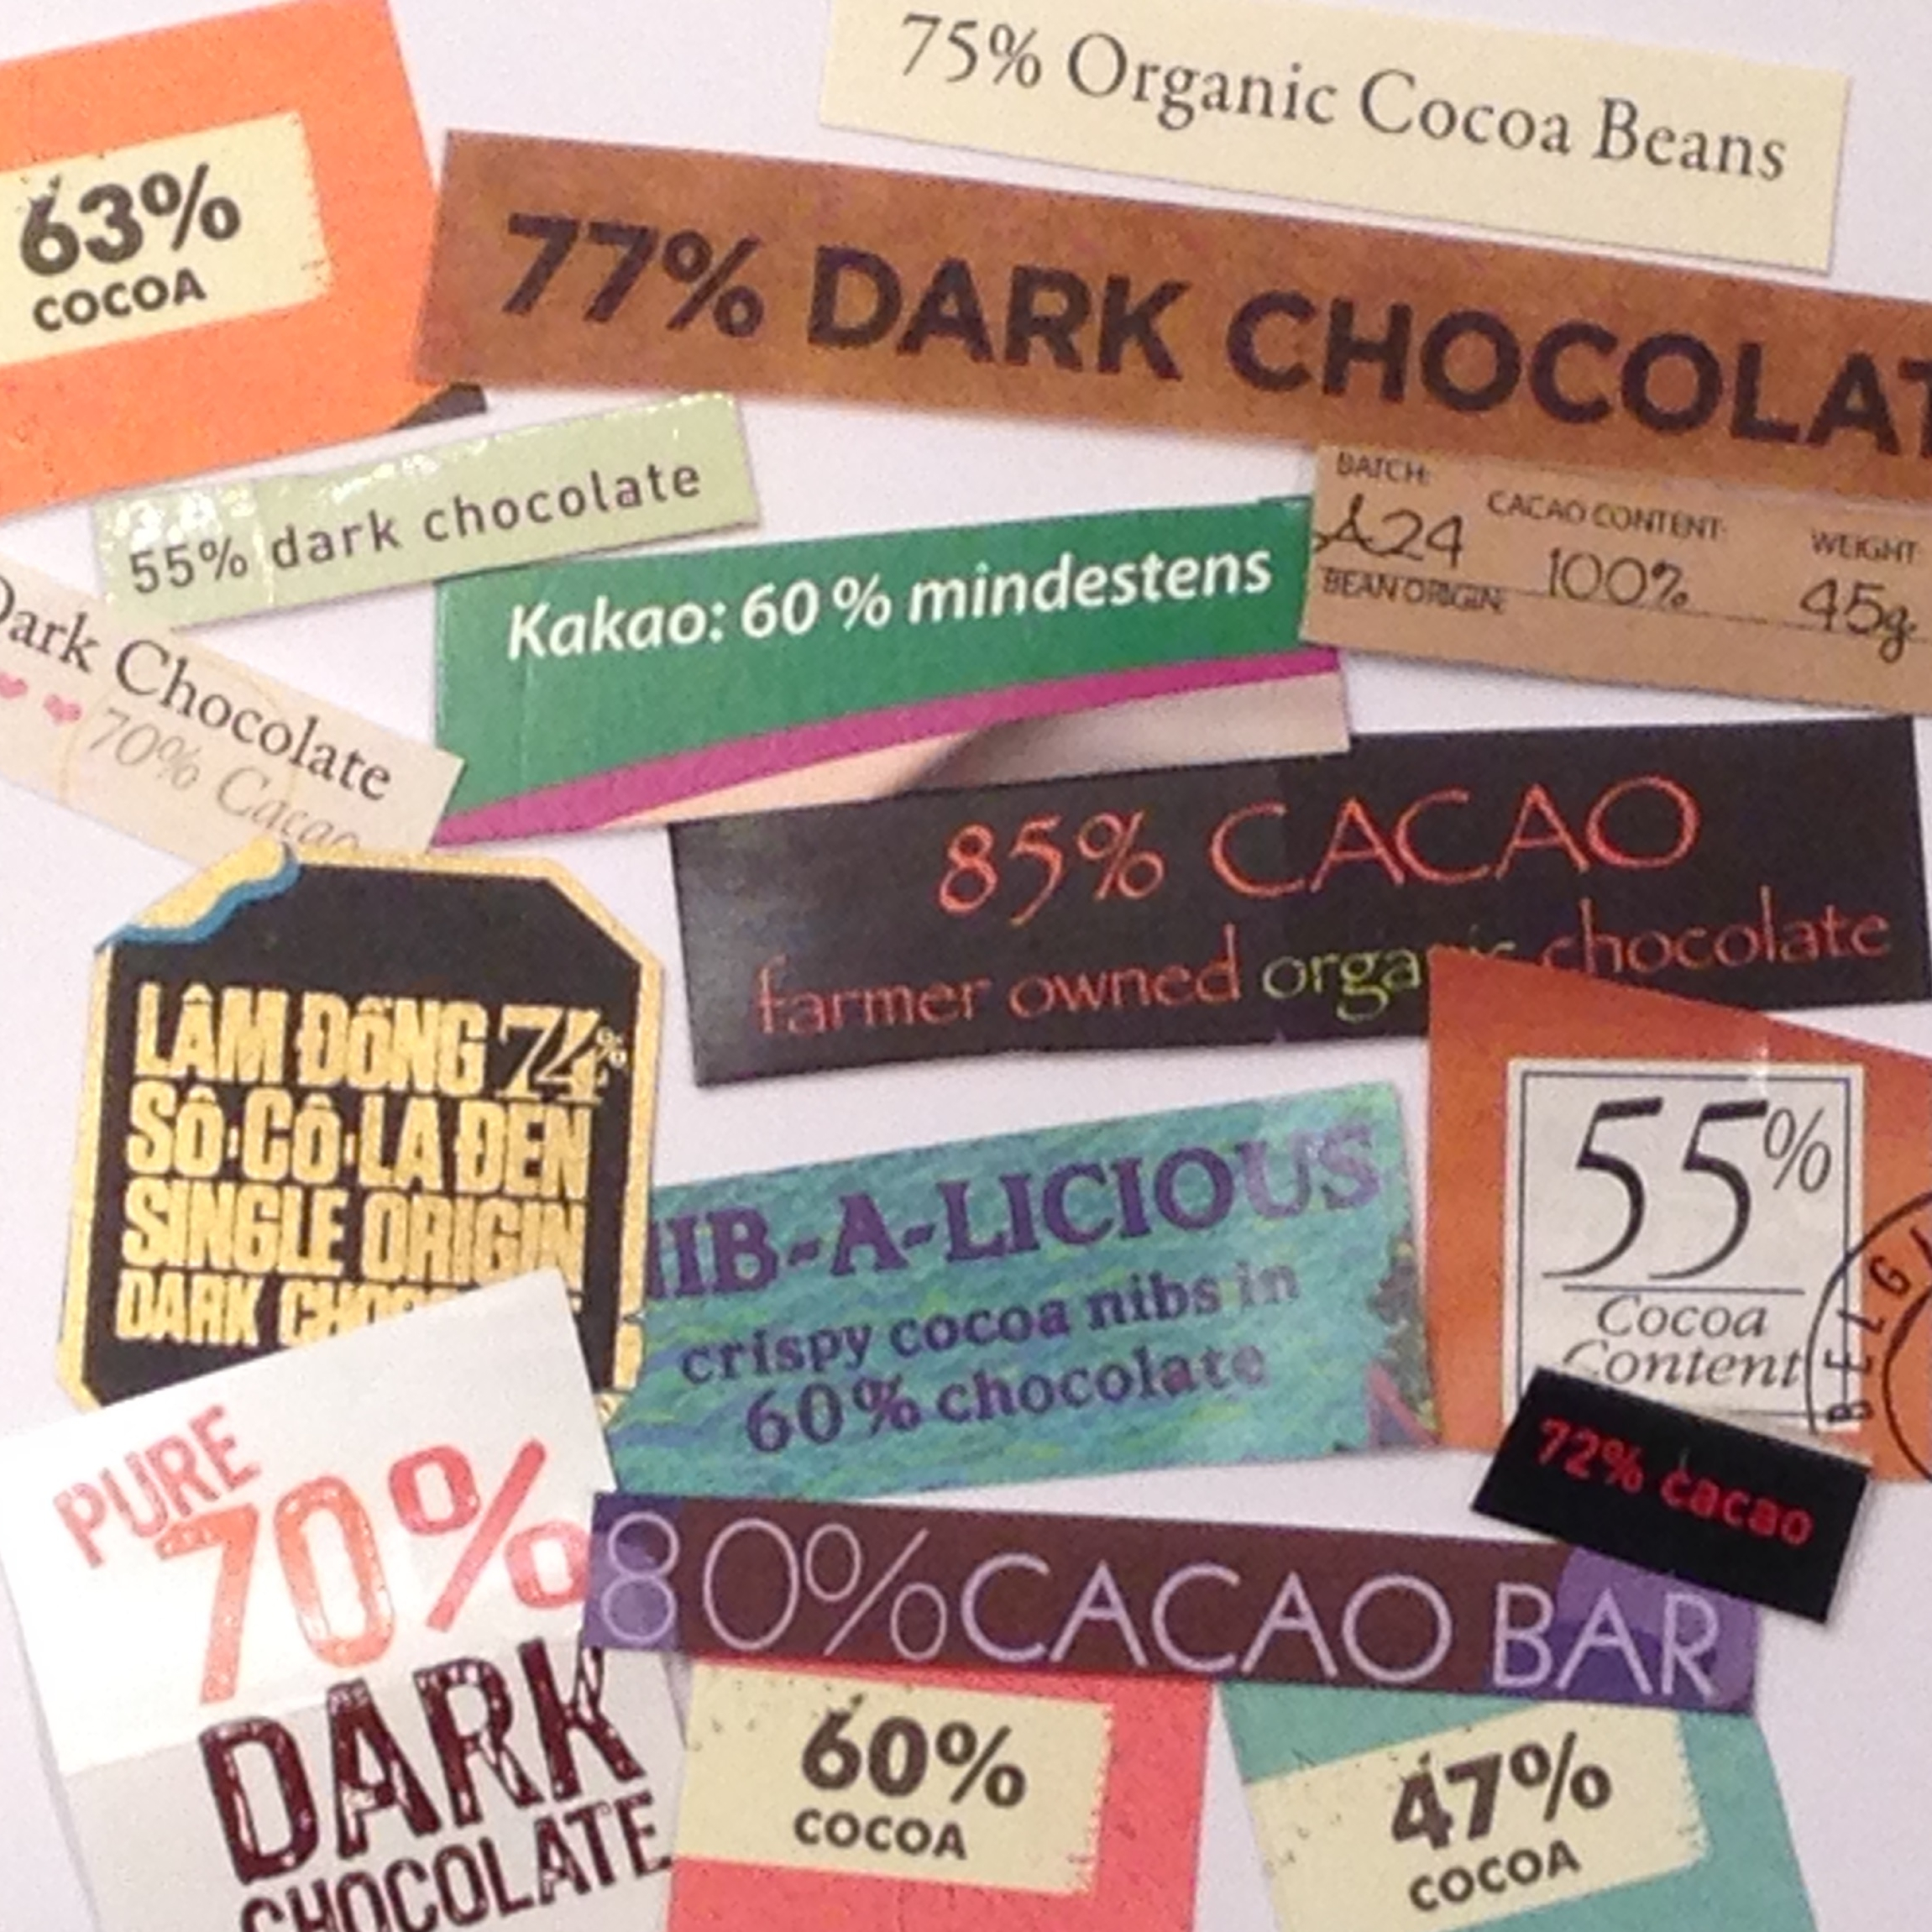 What does Cacao Content Mean?